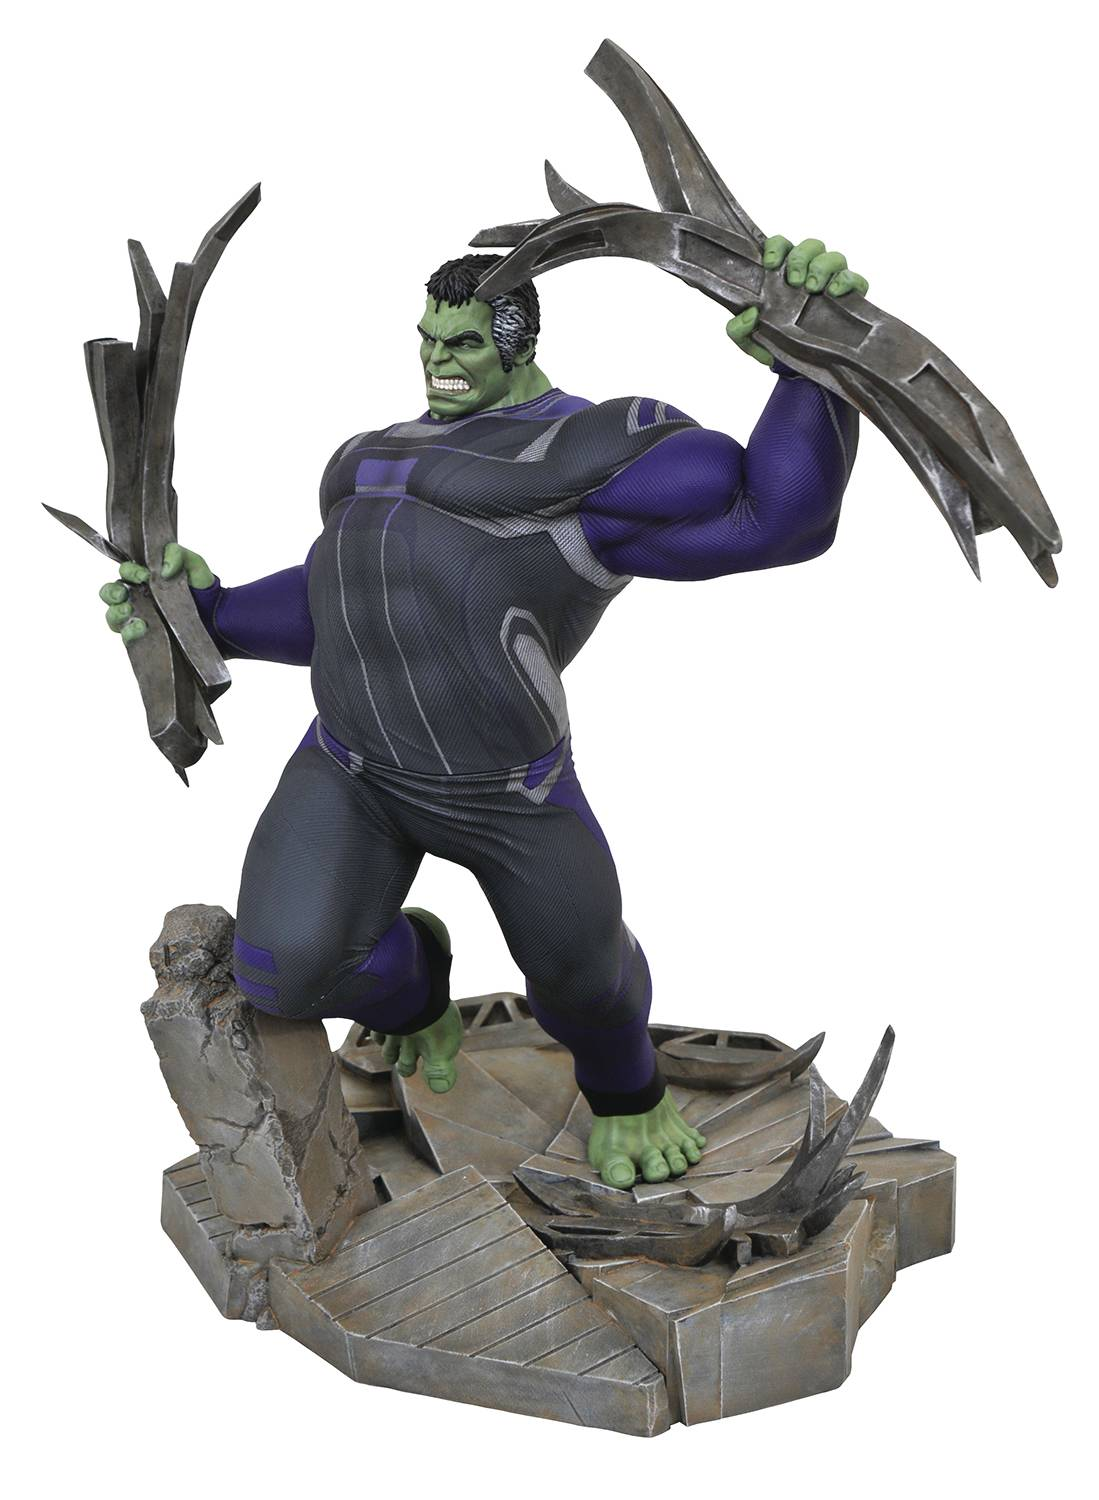 MARVEL GALLERY AVENGERS 4 TRACKSUIT HULK DLX PVC FIG